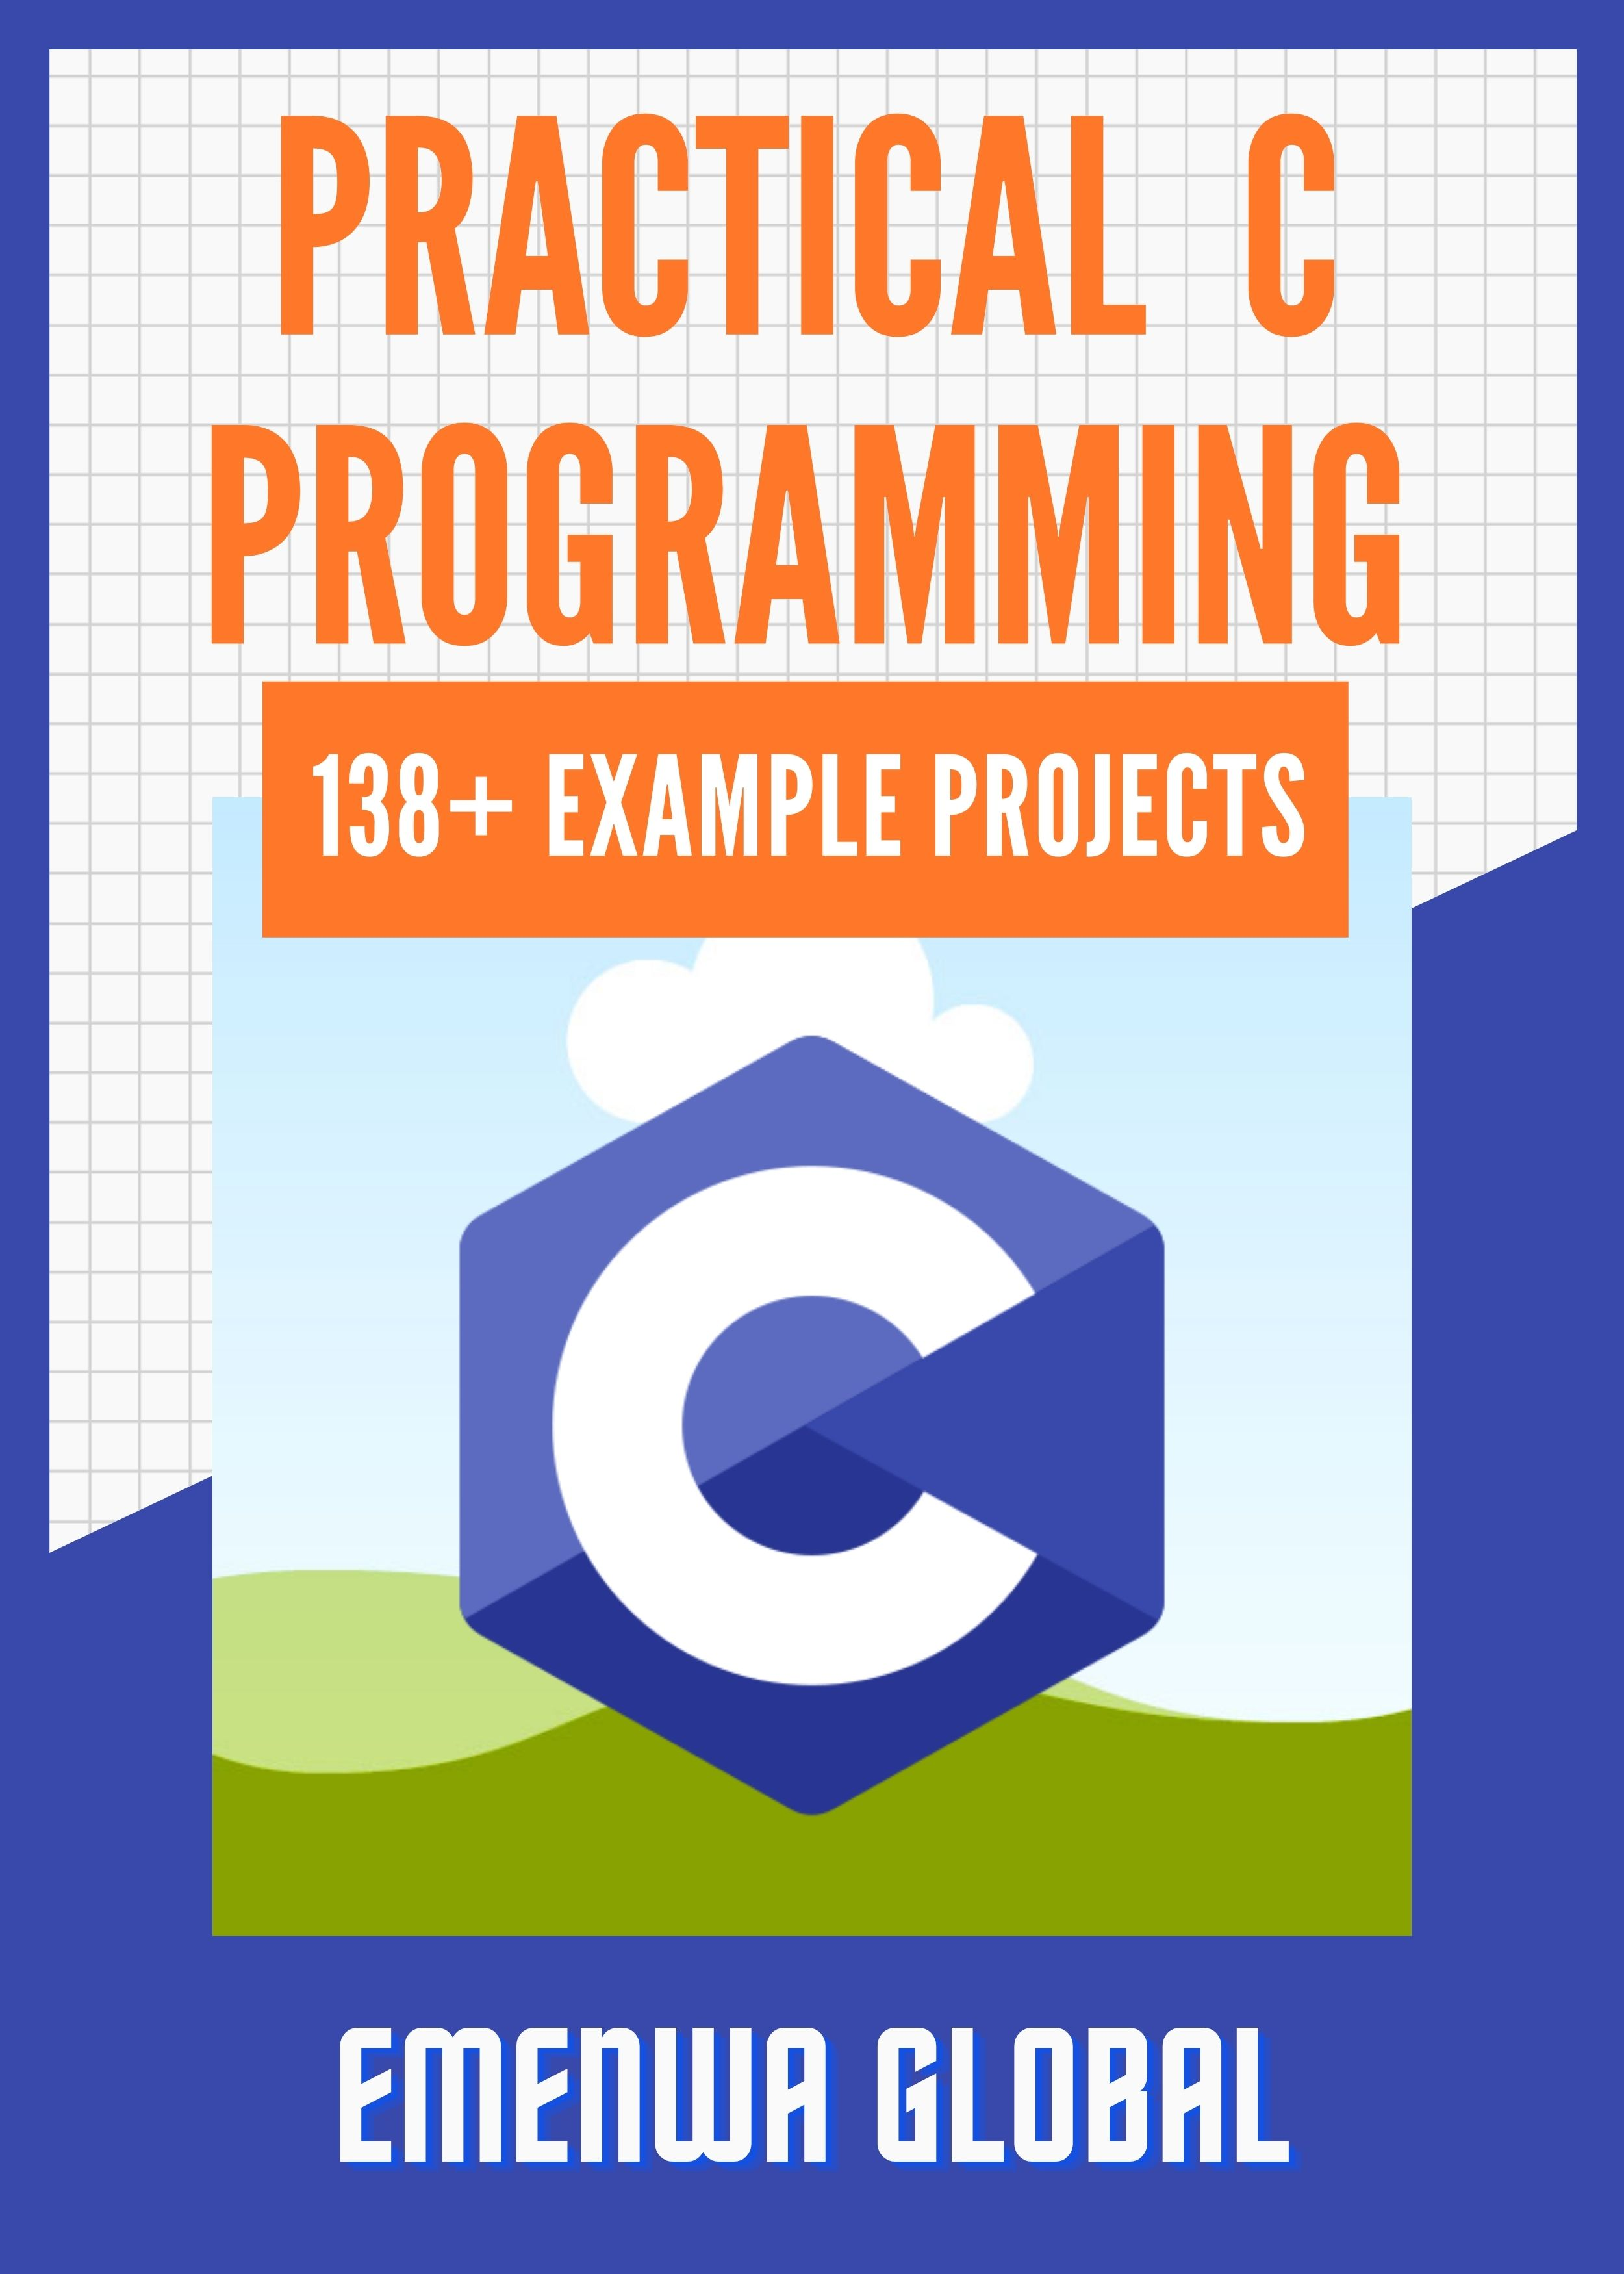 Practical C Programming : 130+ Practical C Programming Practices And Projects